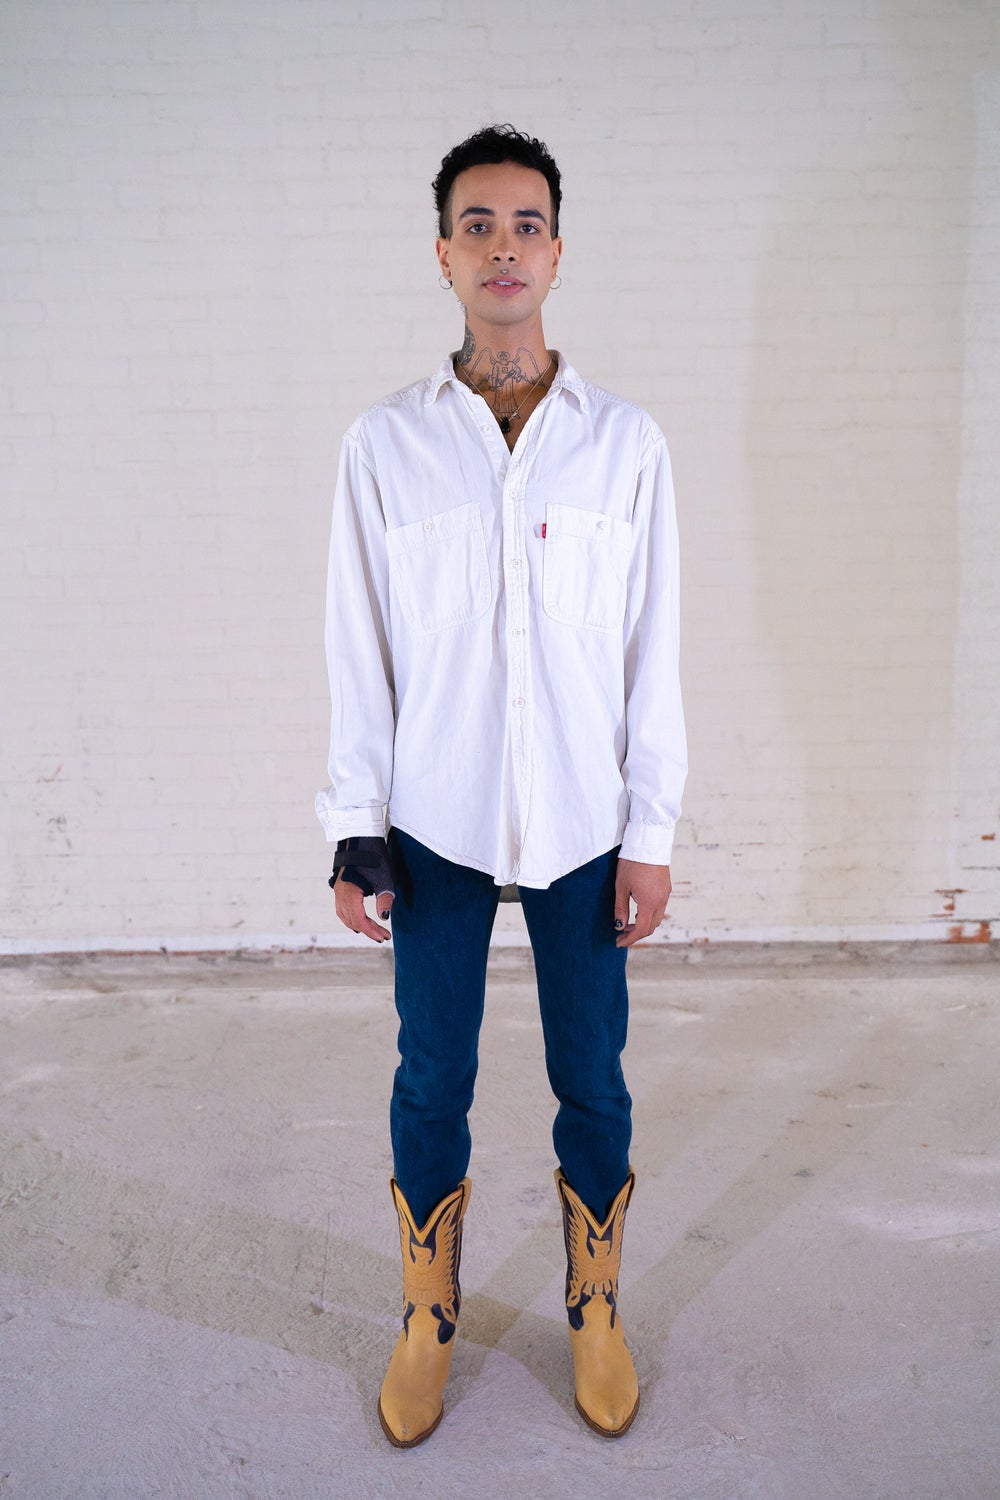 Image of Levi Strauss' White Button Down Blouse